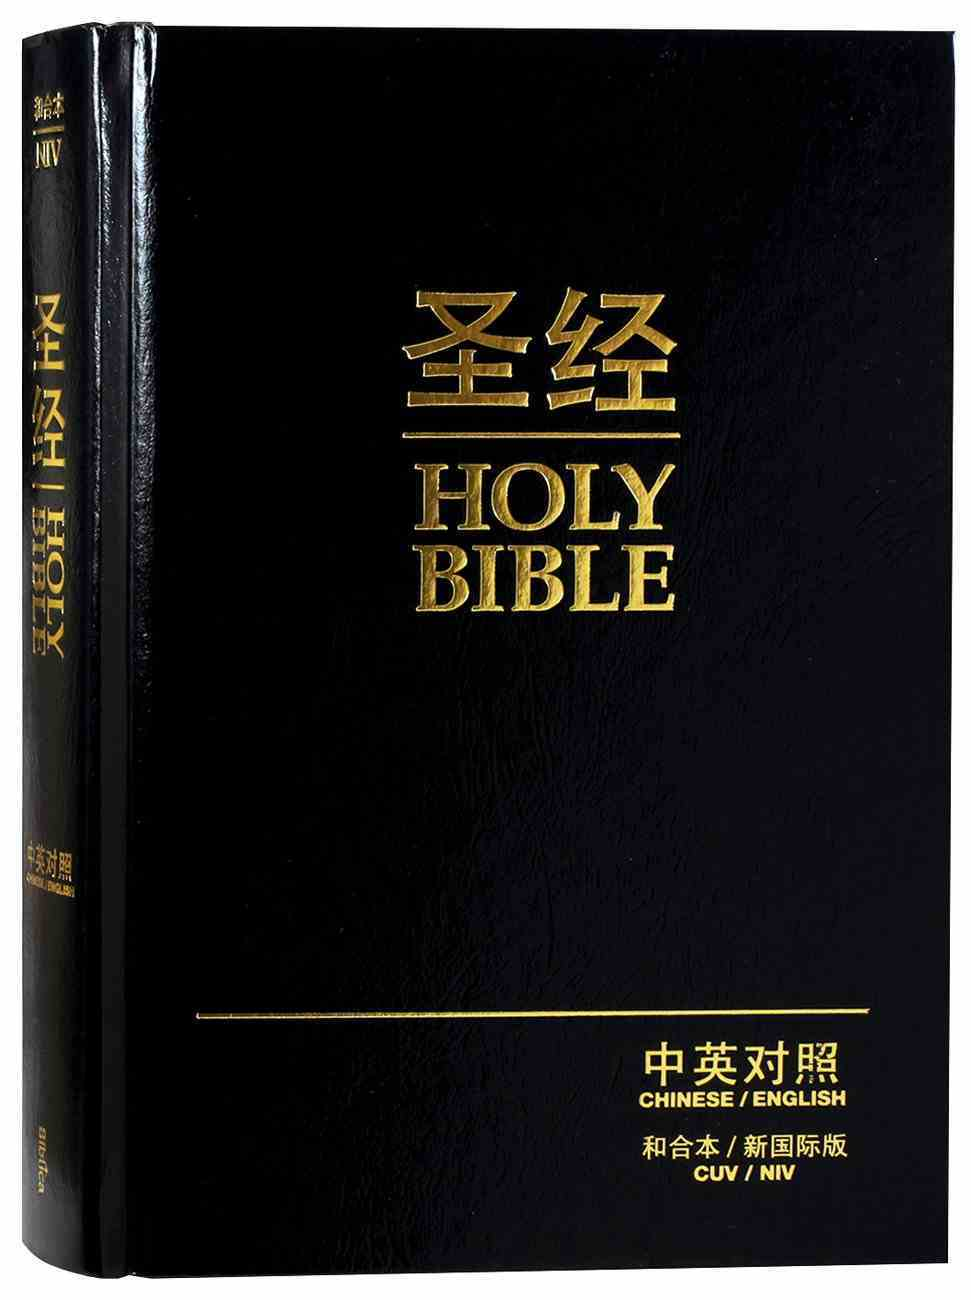 Cuv NIV Chinese/English Bilingual Bible (Black Letter) (Simplified) Hardback